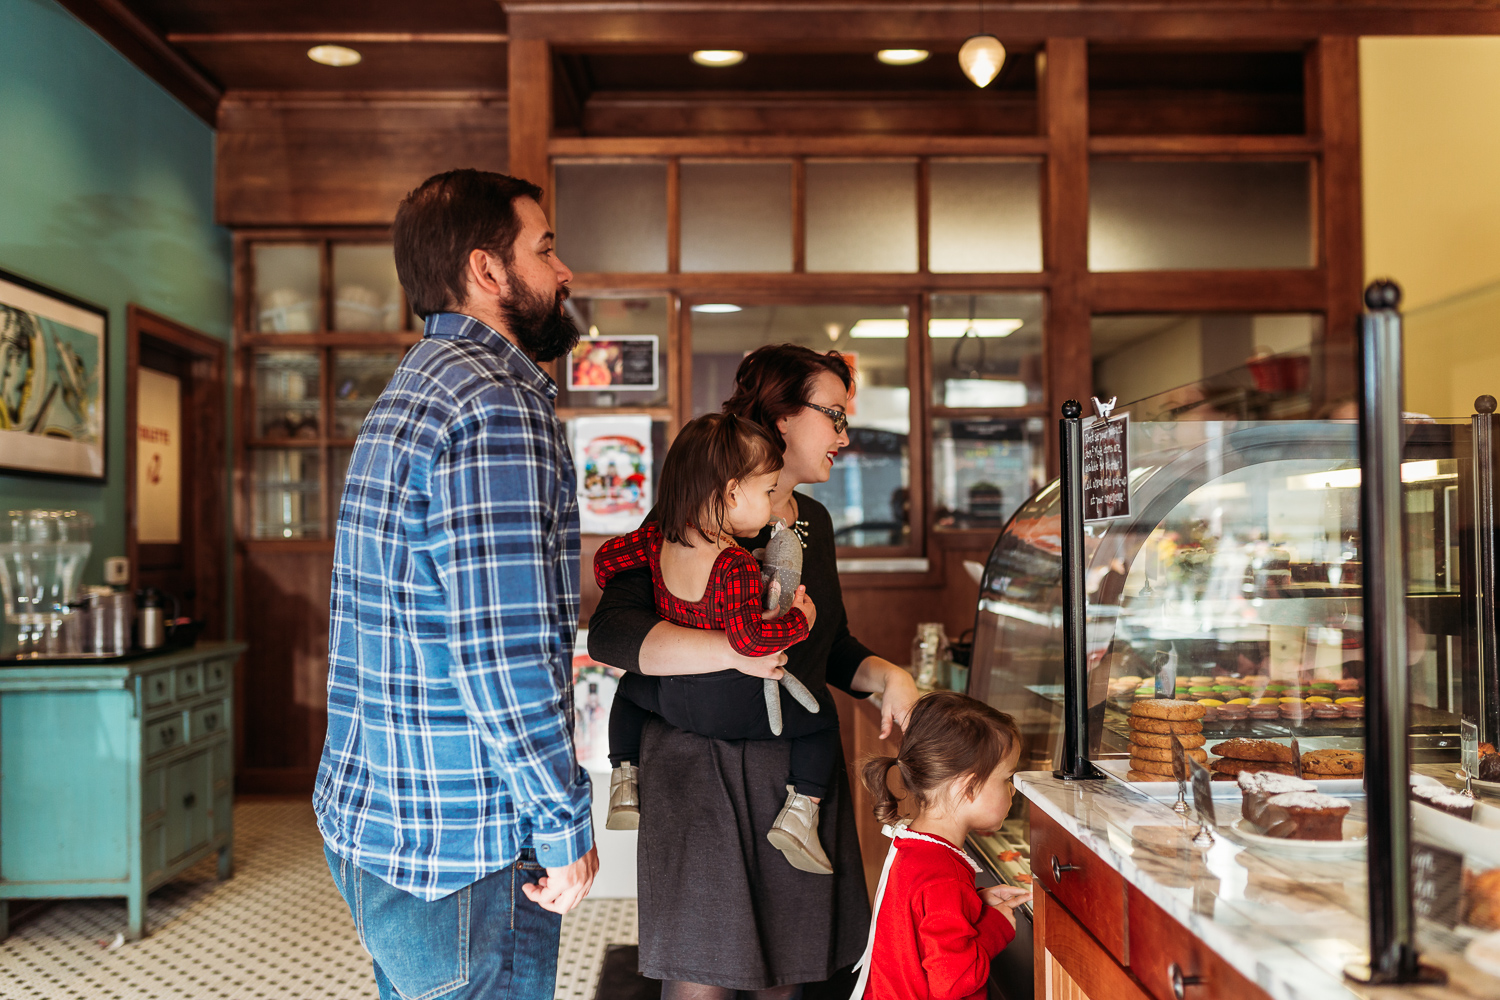 family in bakery in wauwatosa, wisconsin making choices